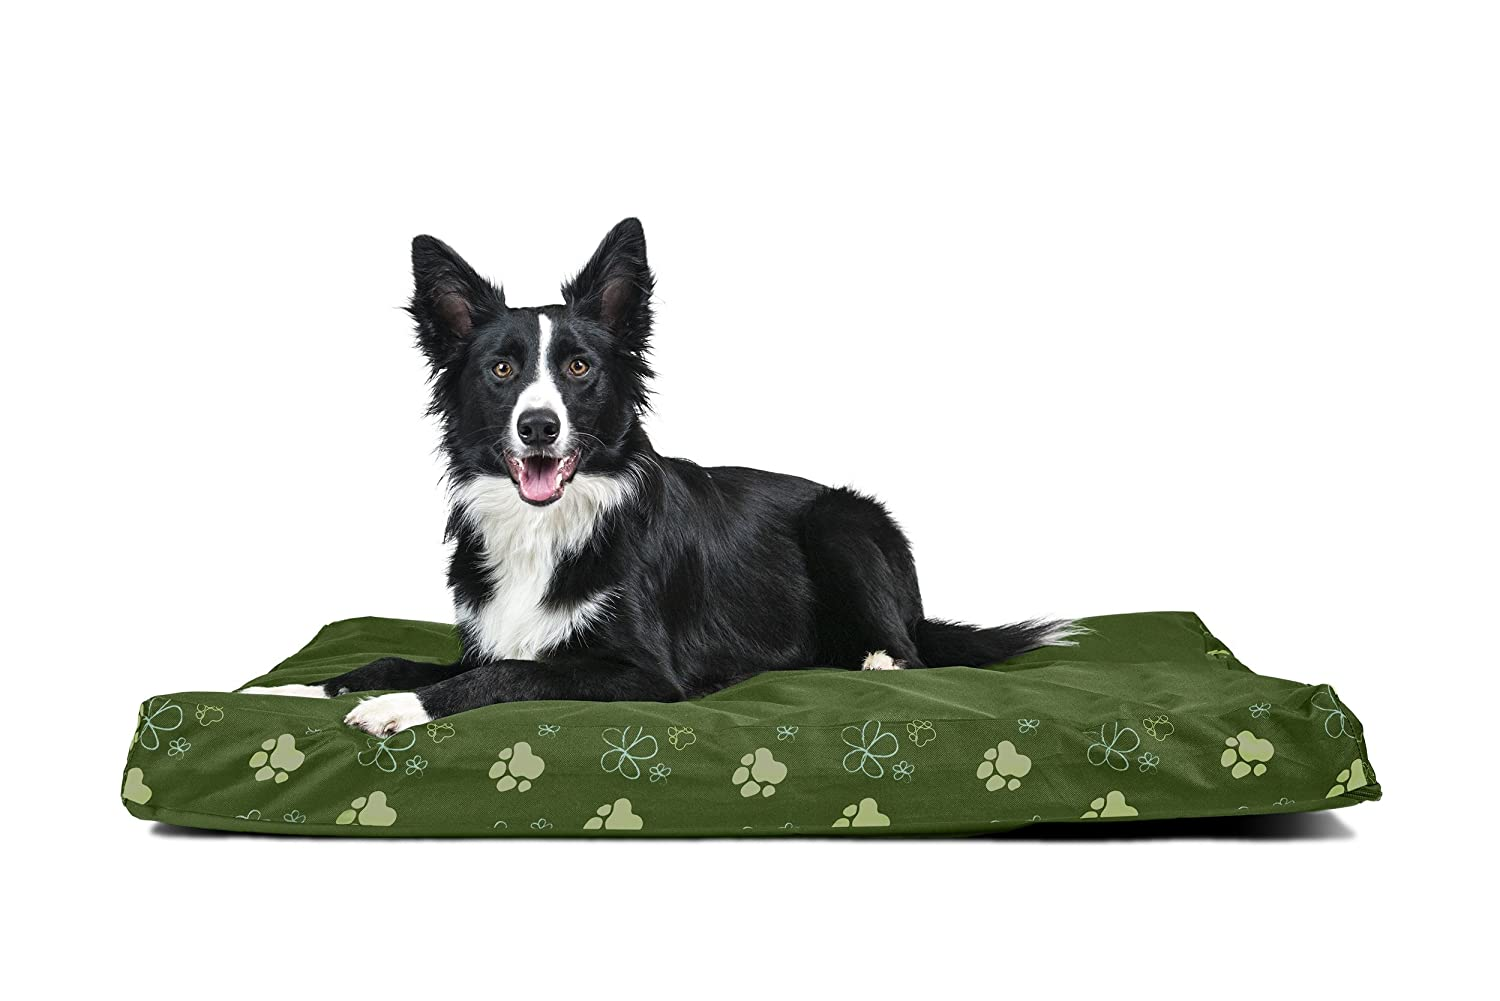 Jungle Green L Jungle Green L Furhaven Pet Large Garden Indoor Outdoor Deluxe Memory Foam Pet Bed, Polycanvas Jungle Green